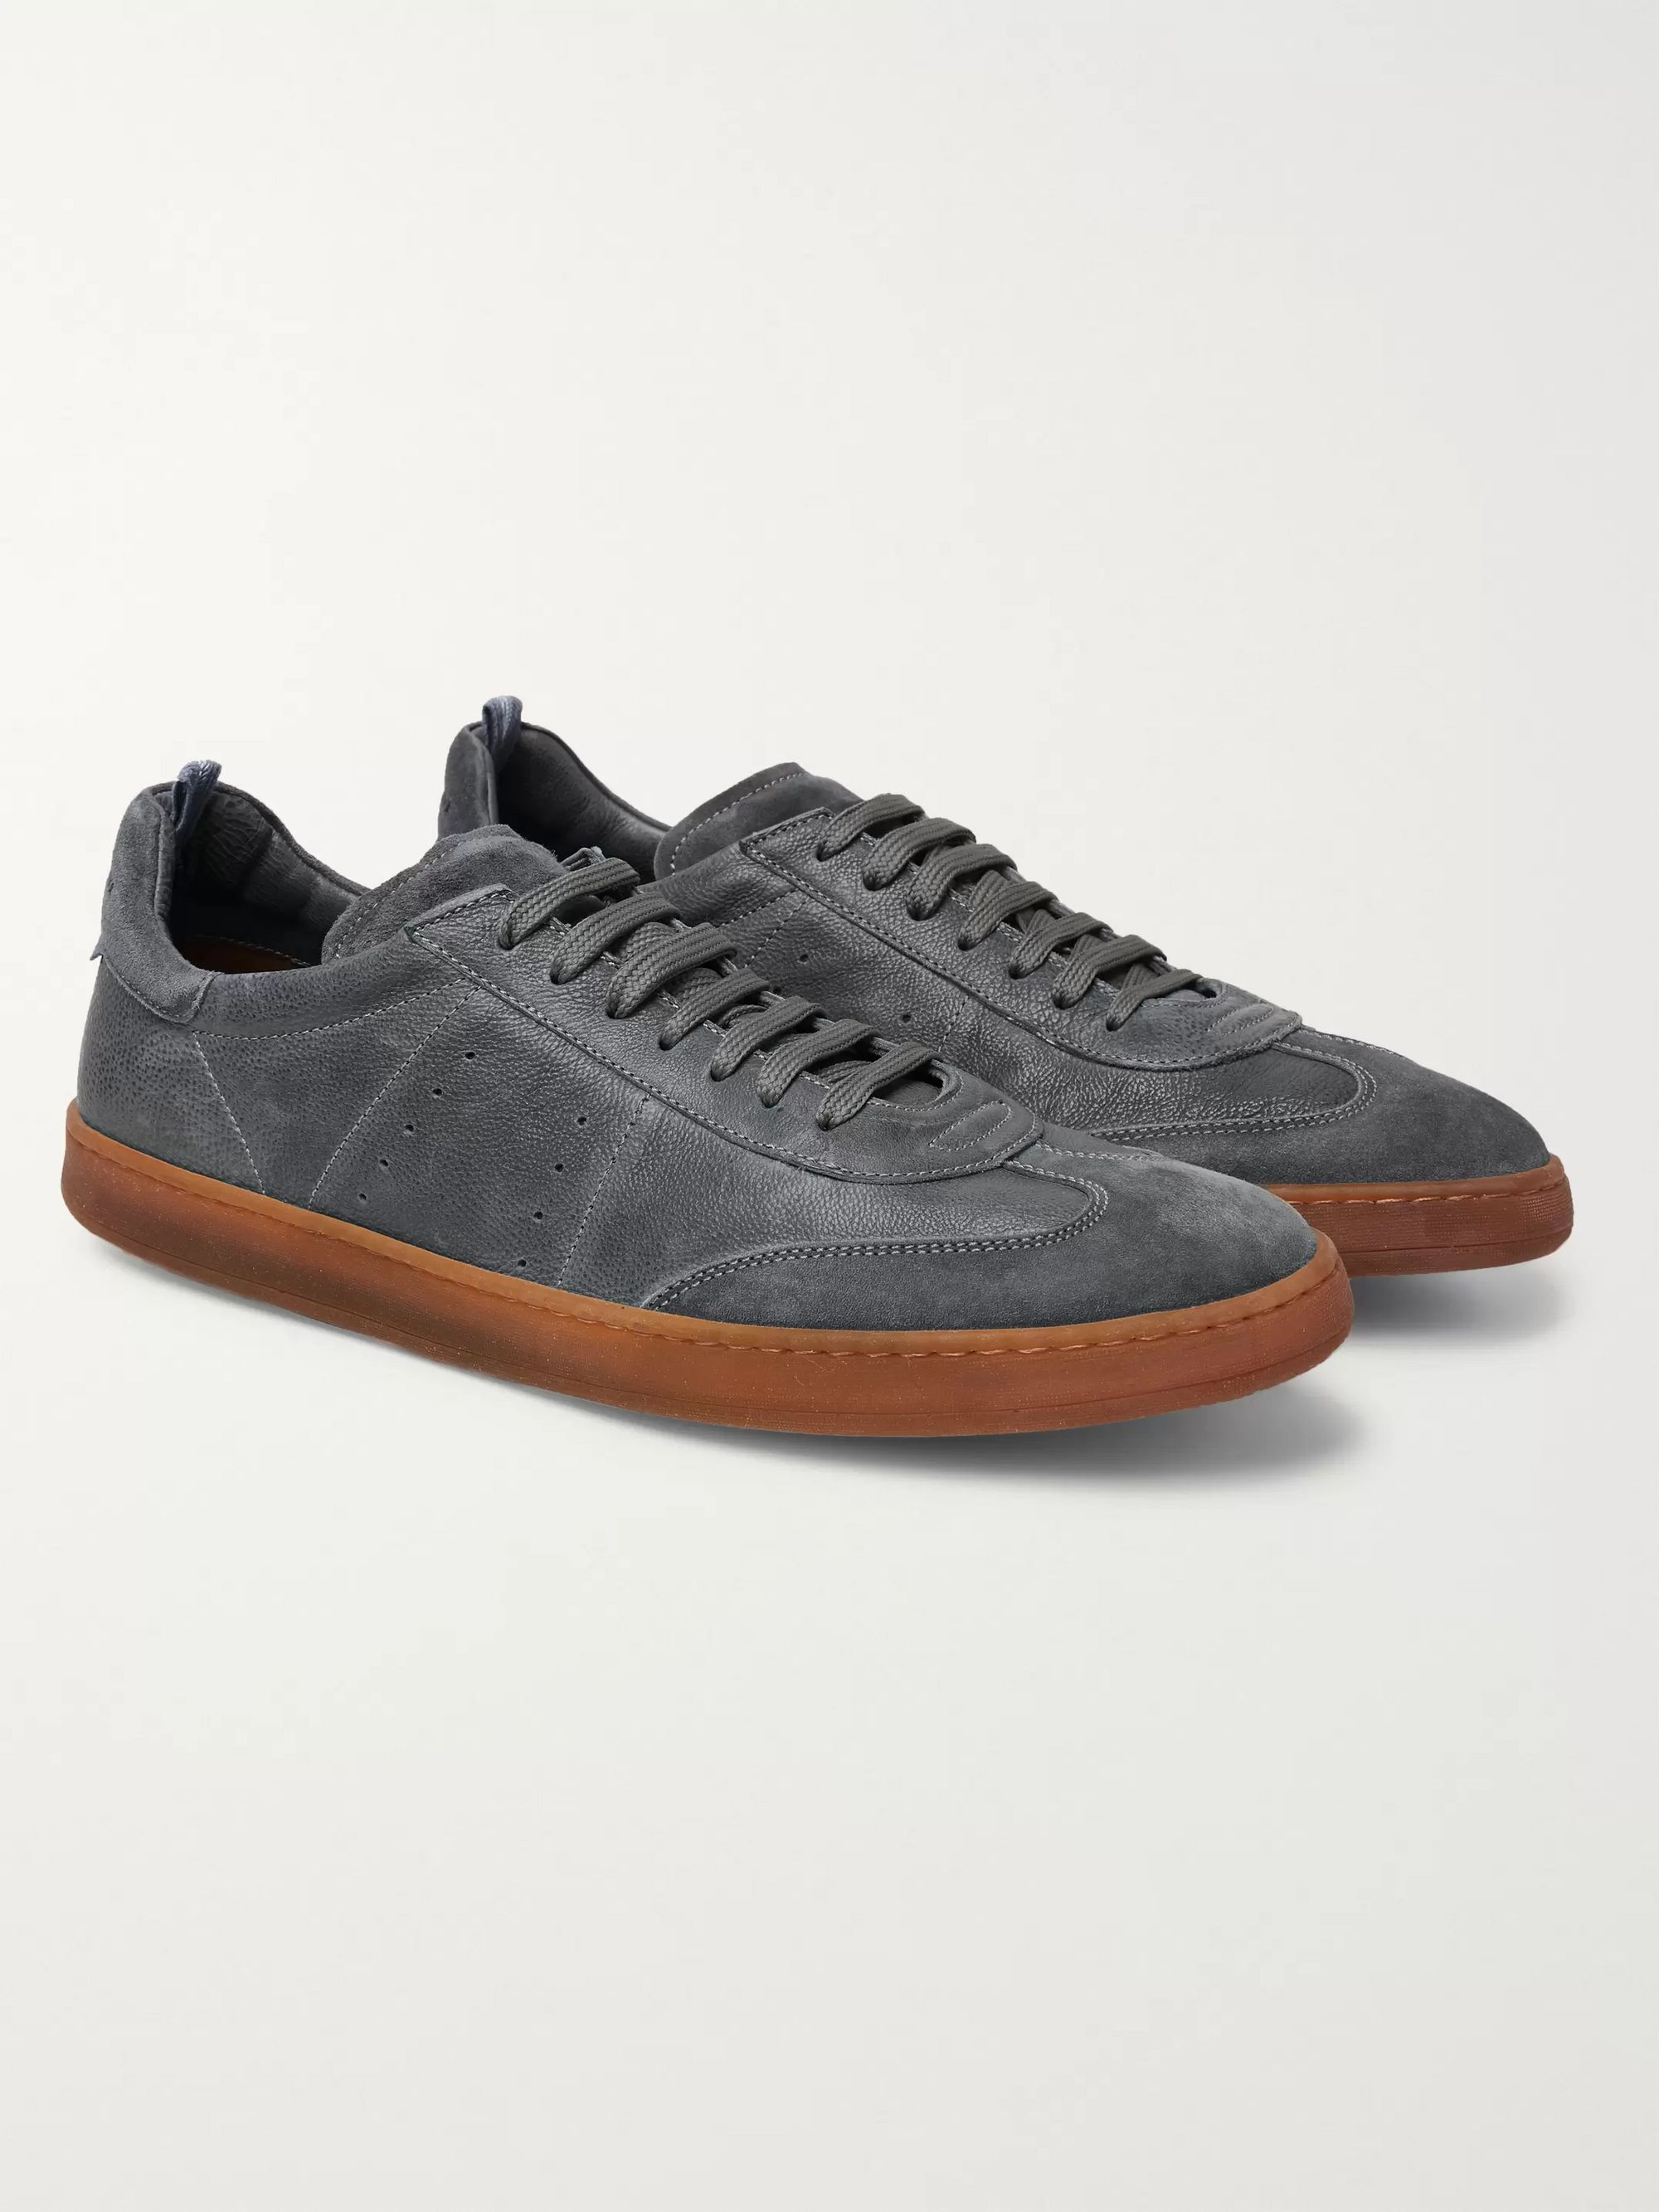 Officine Creative Kombo Nubuck-Trimmed Leather Sneakers